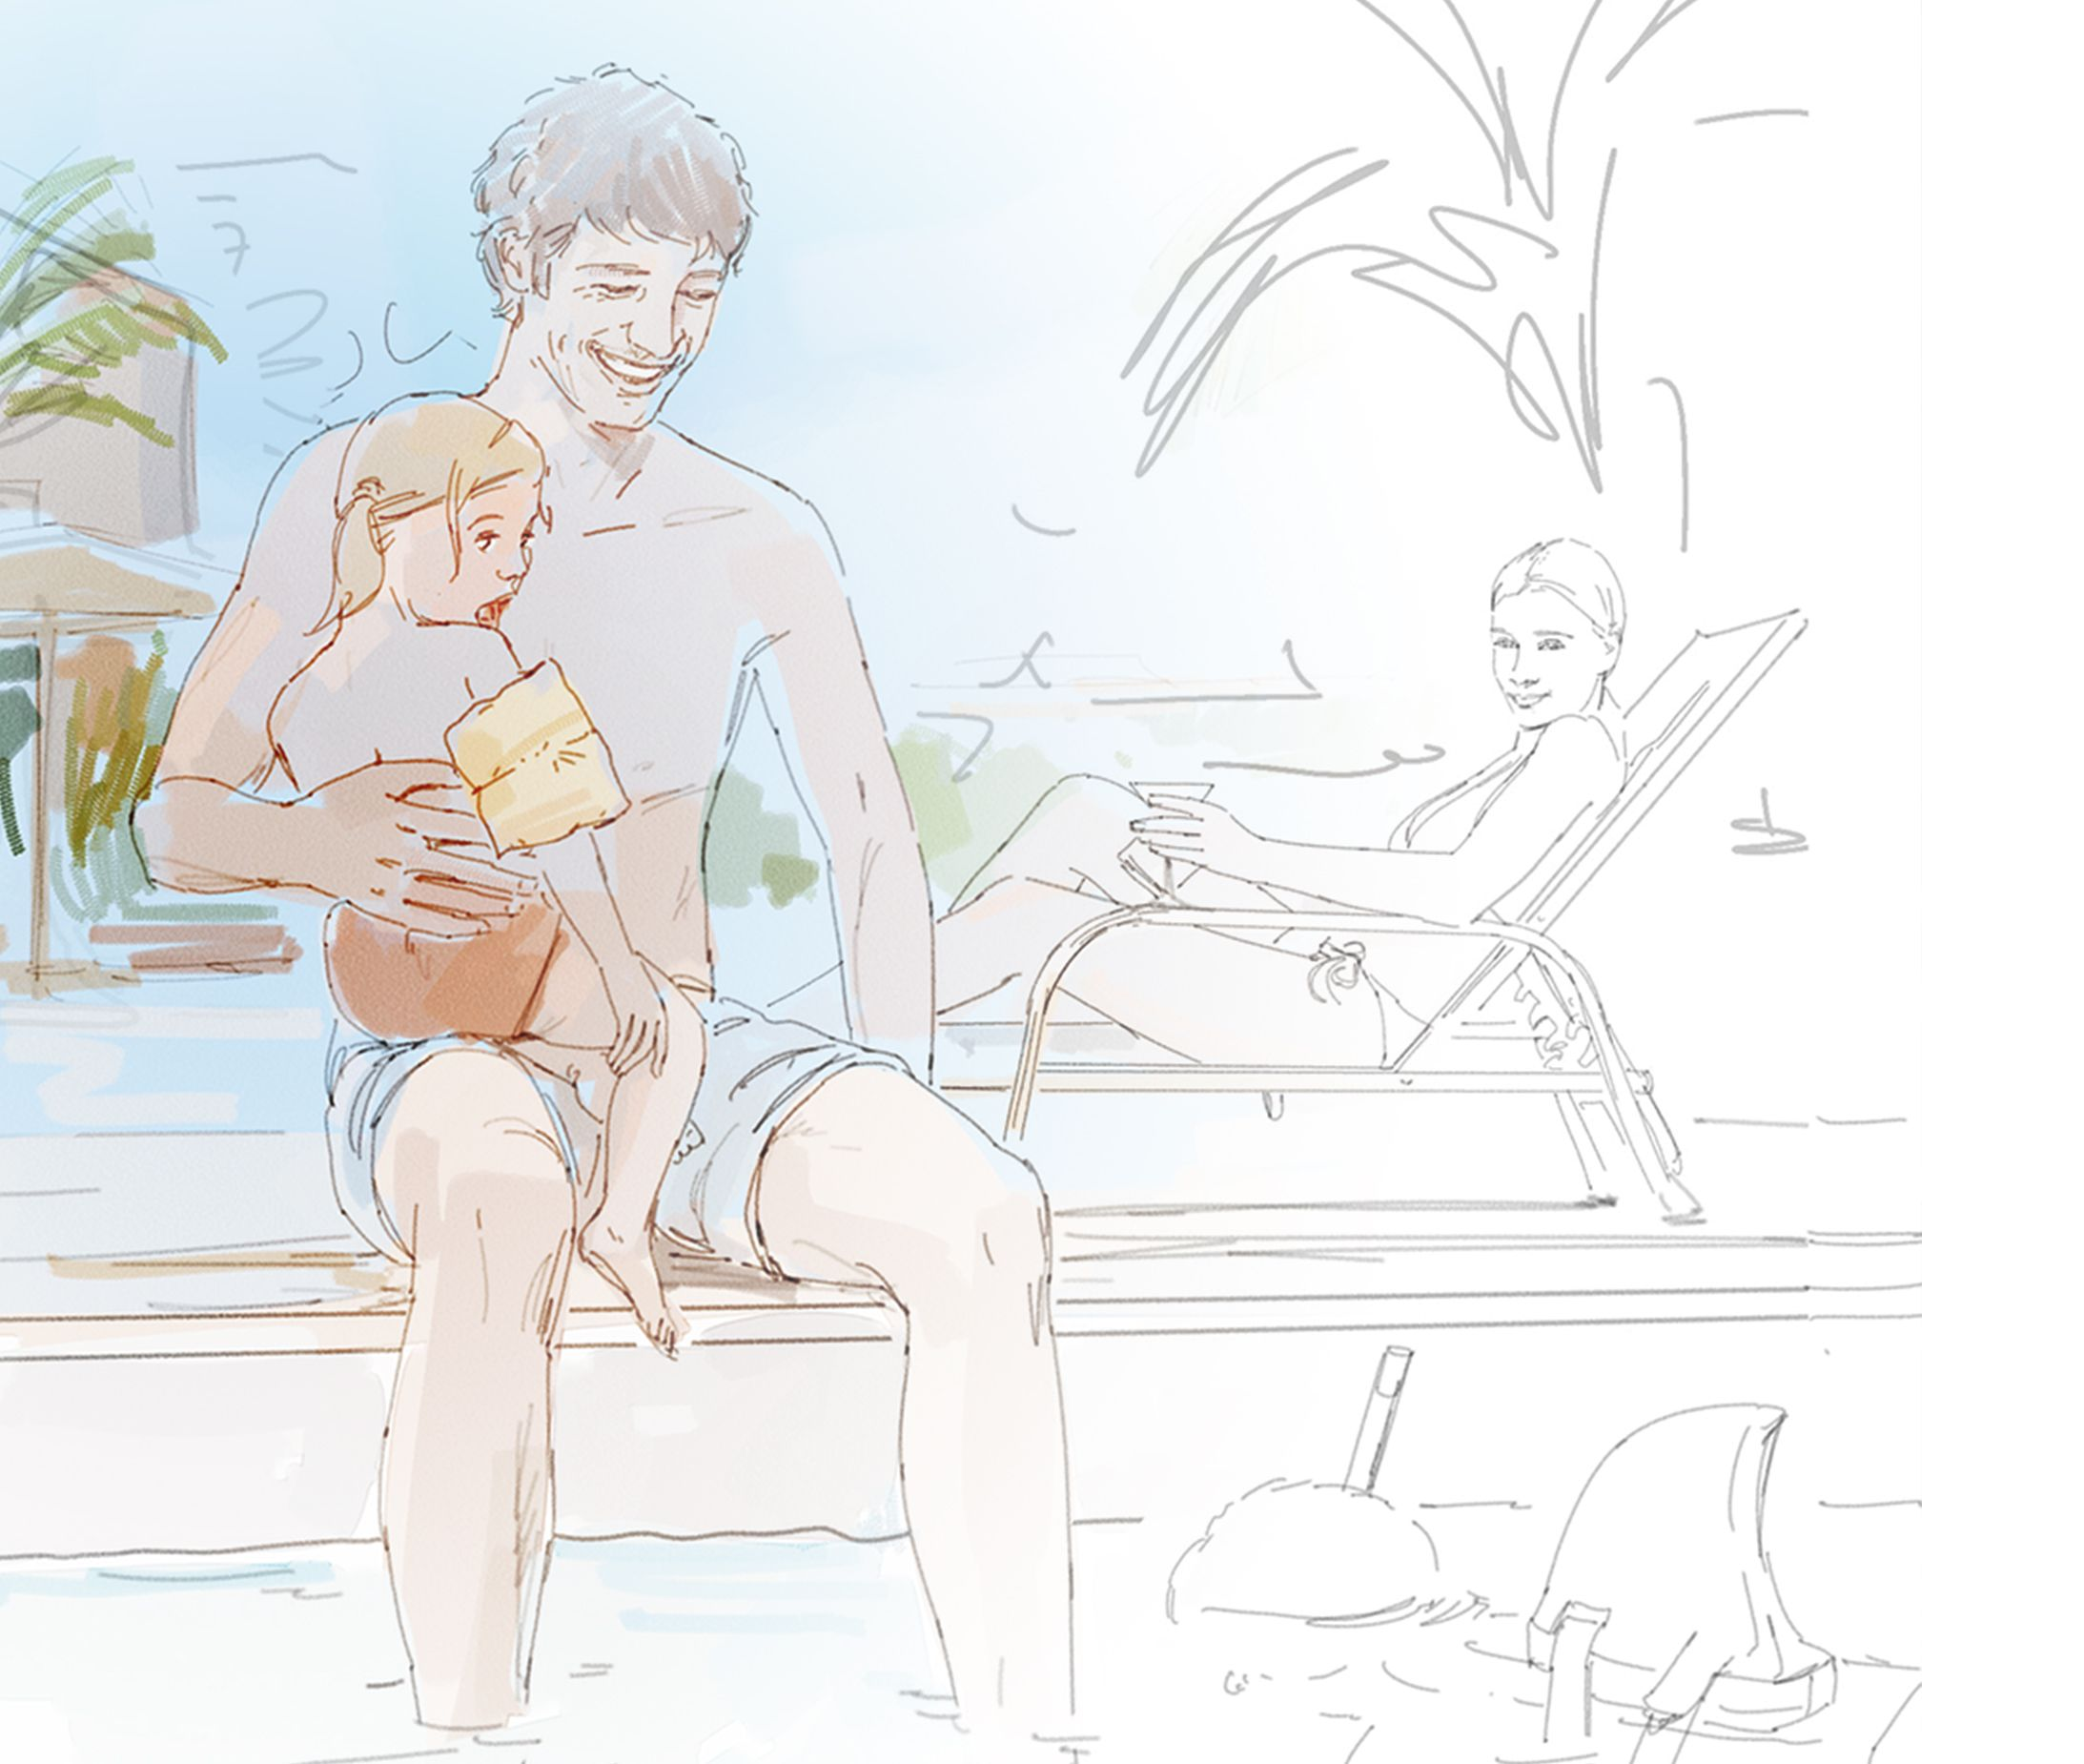 Concept sketch of a man holding a child by the pool.